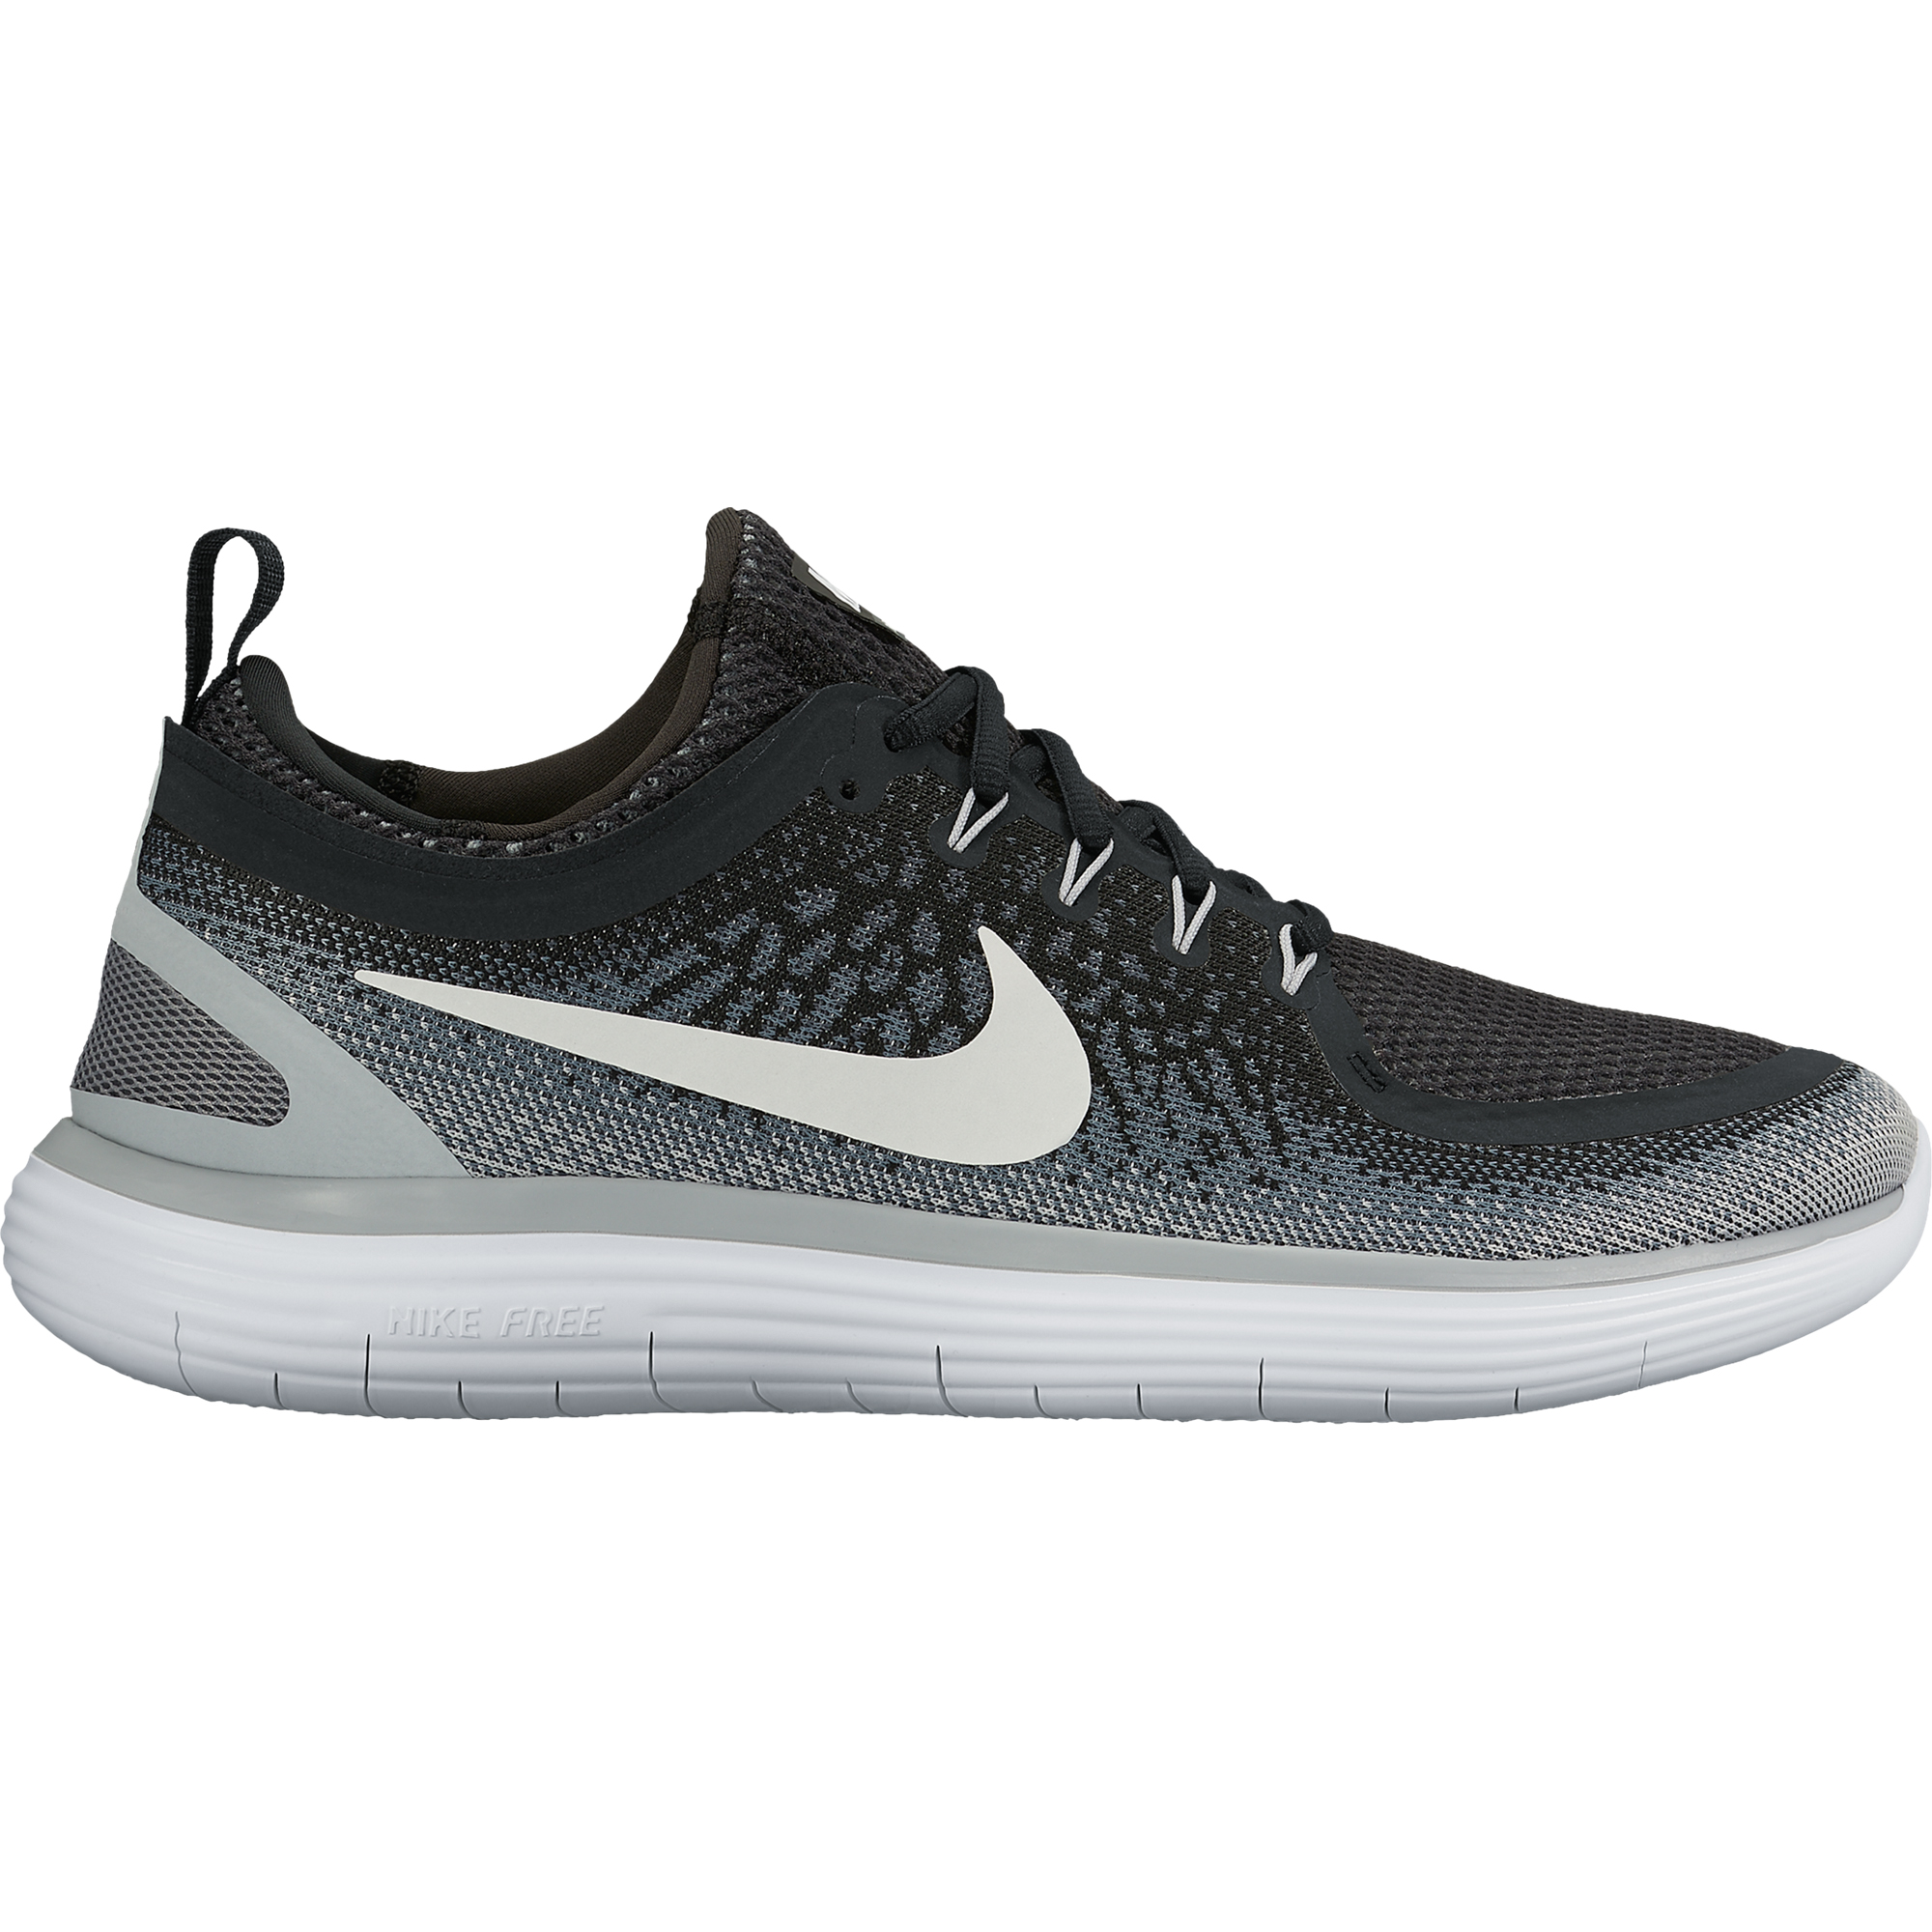 meilleur service a08b1 53160 Nike Free Run Distance 2 Road Running Shoes - Men's